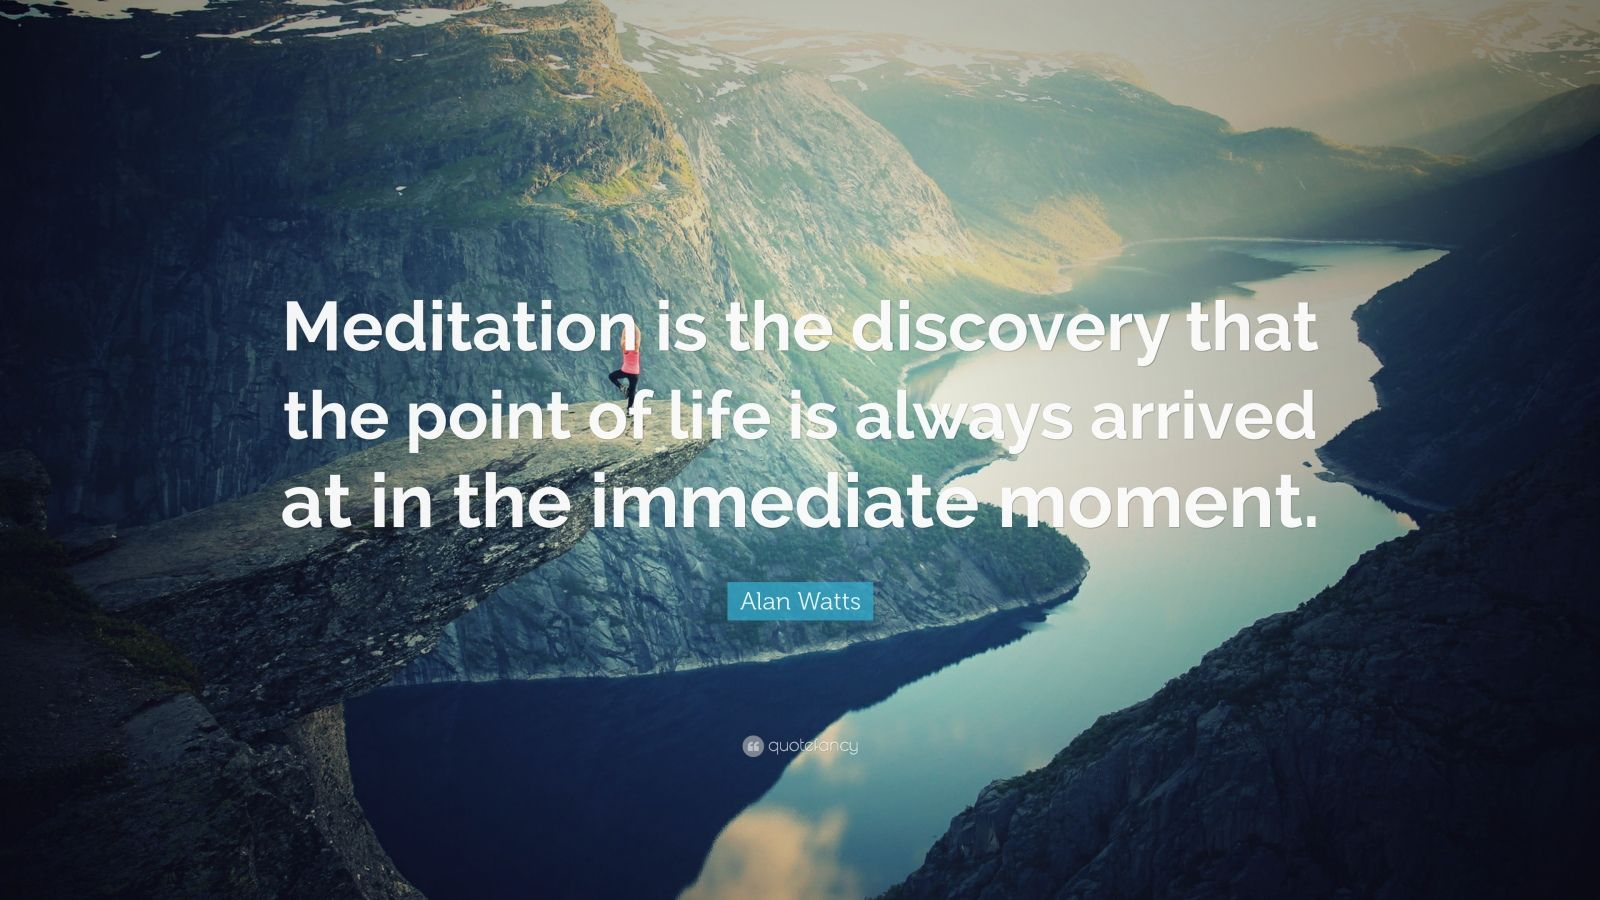 """Alan Watts Quote: """"Meditation is the discovery that the point of life is always arrived at in the immediate moment."""""""